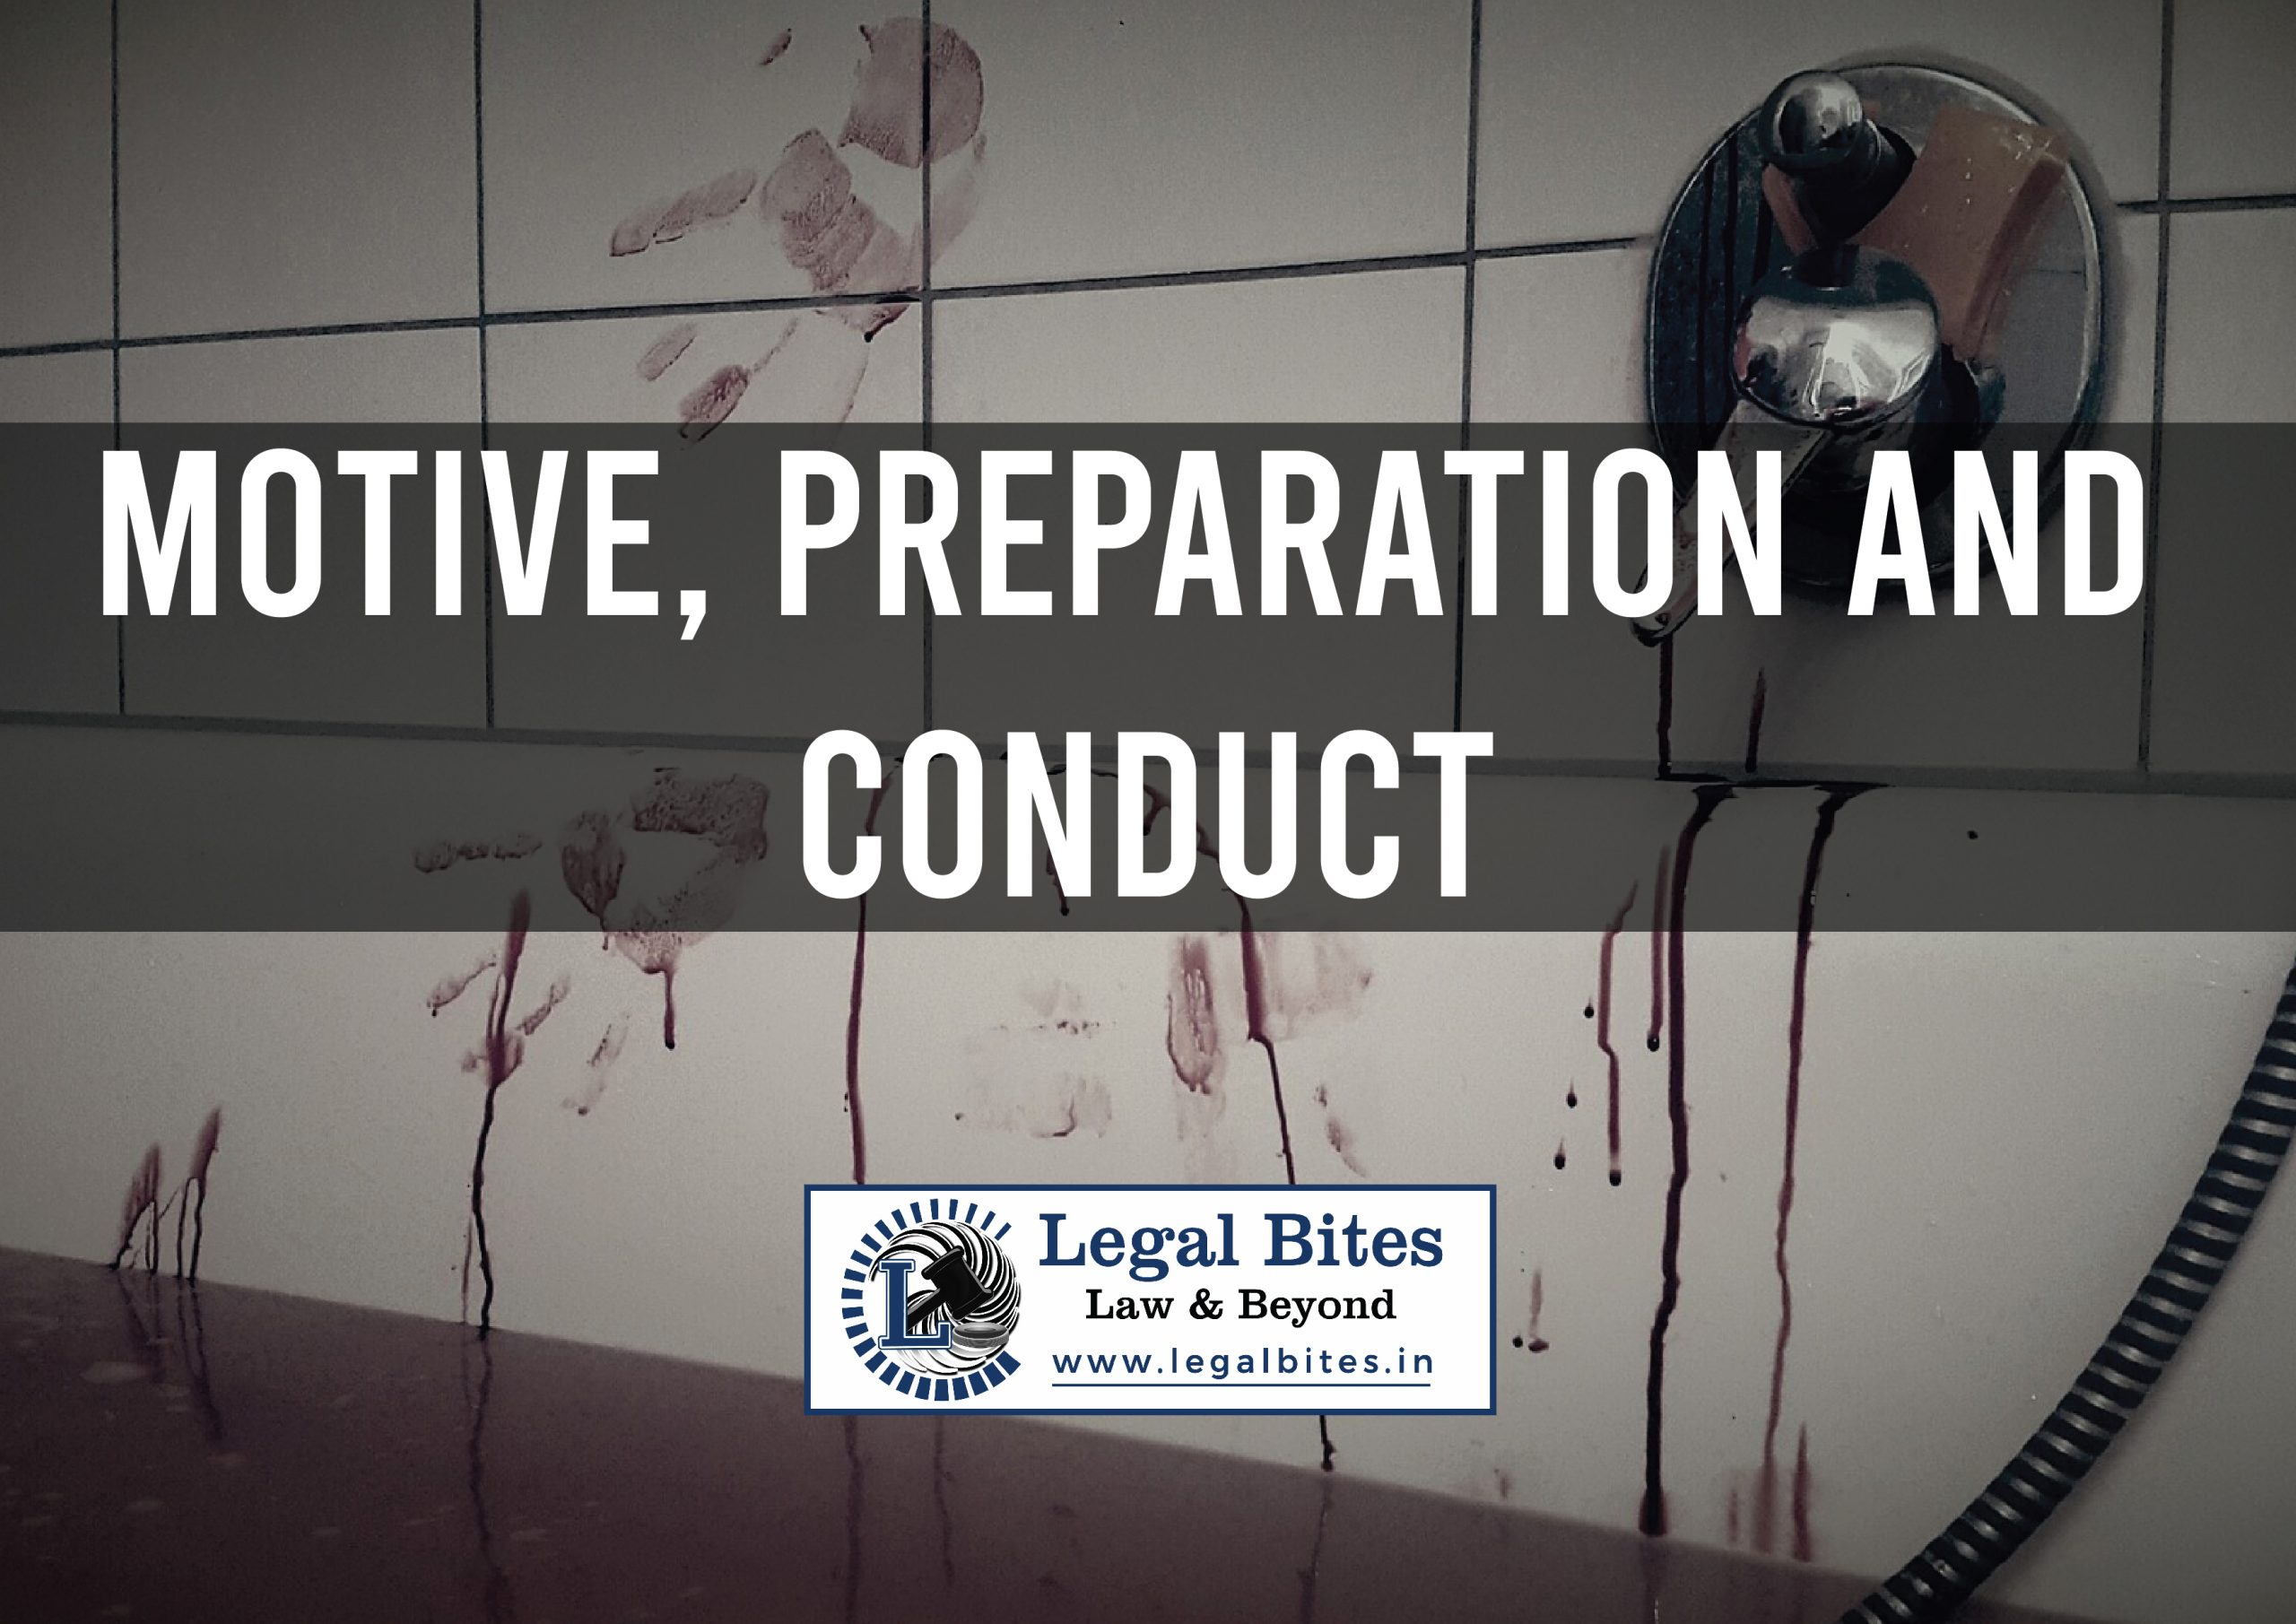 Motive, Preparation and Conduct